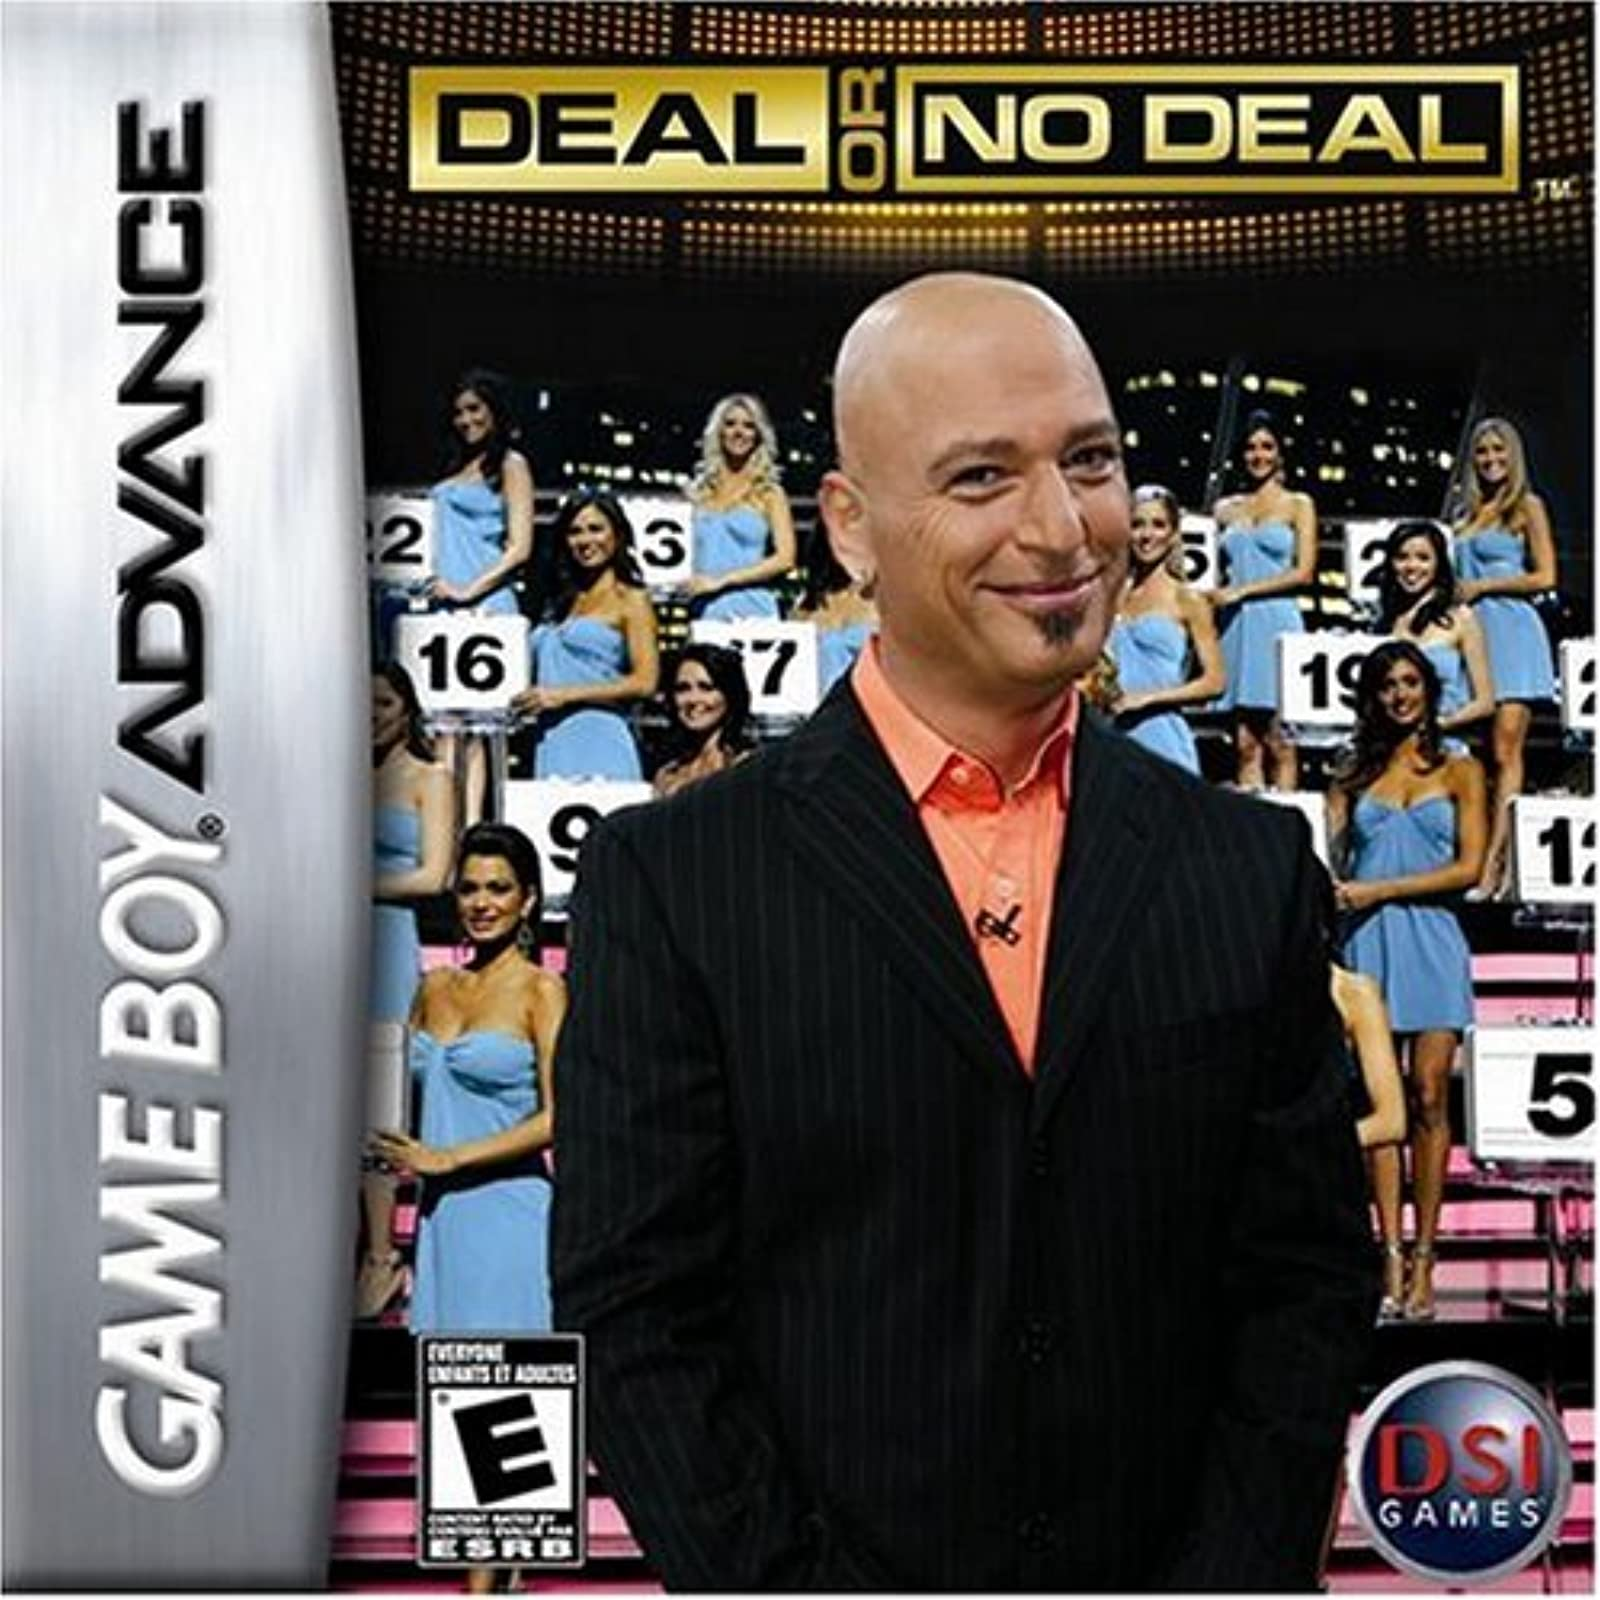 Deal Or No Deal Game Boy Advance For GBA Gameboy Advance